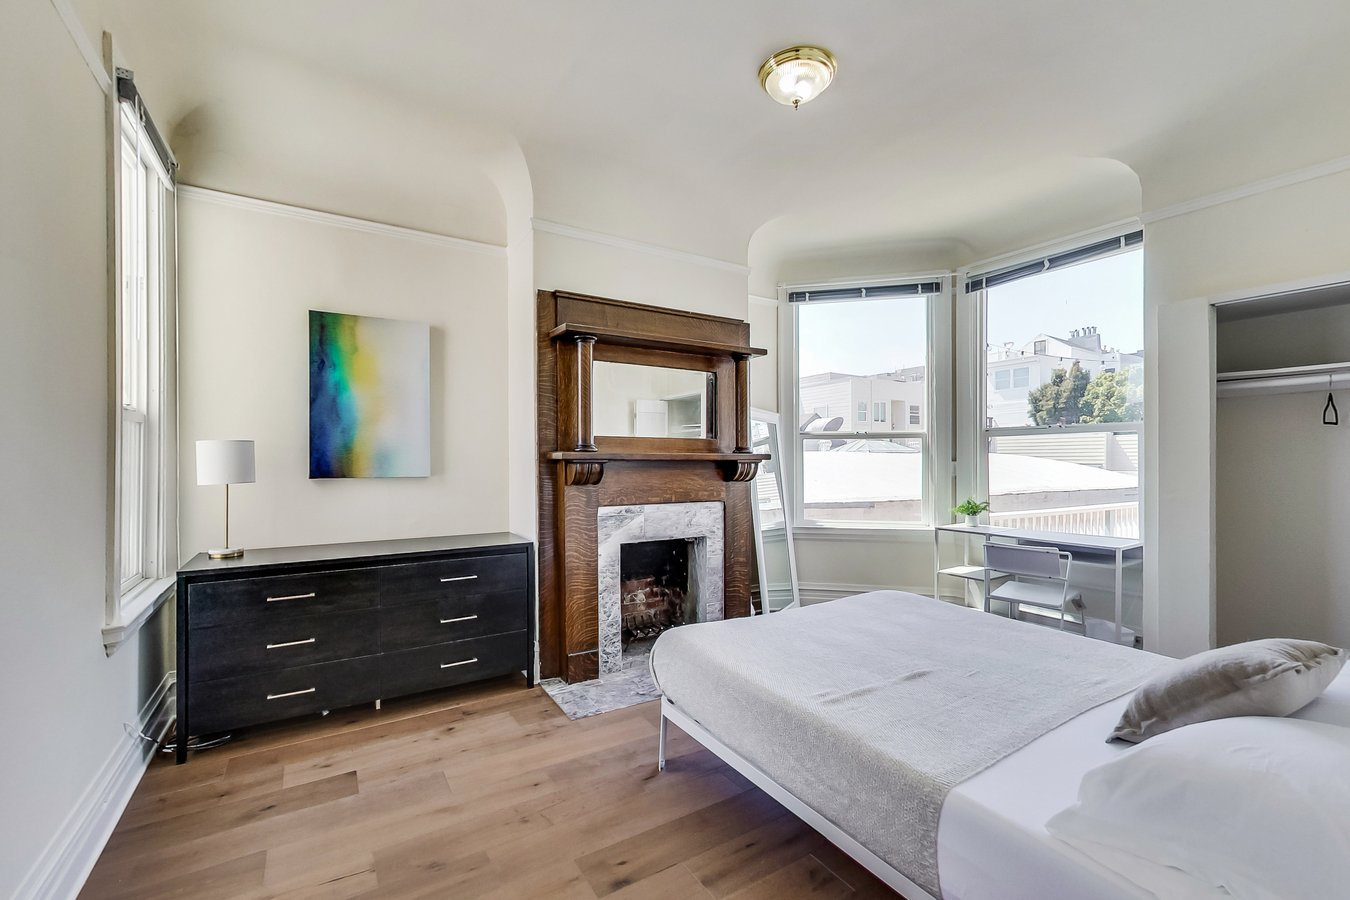 1 Bedroom 1 Bathroom House for rent at Mcallister St & Central Ave Coliving in San Francisco, CA